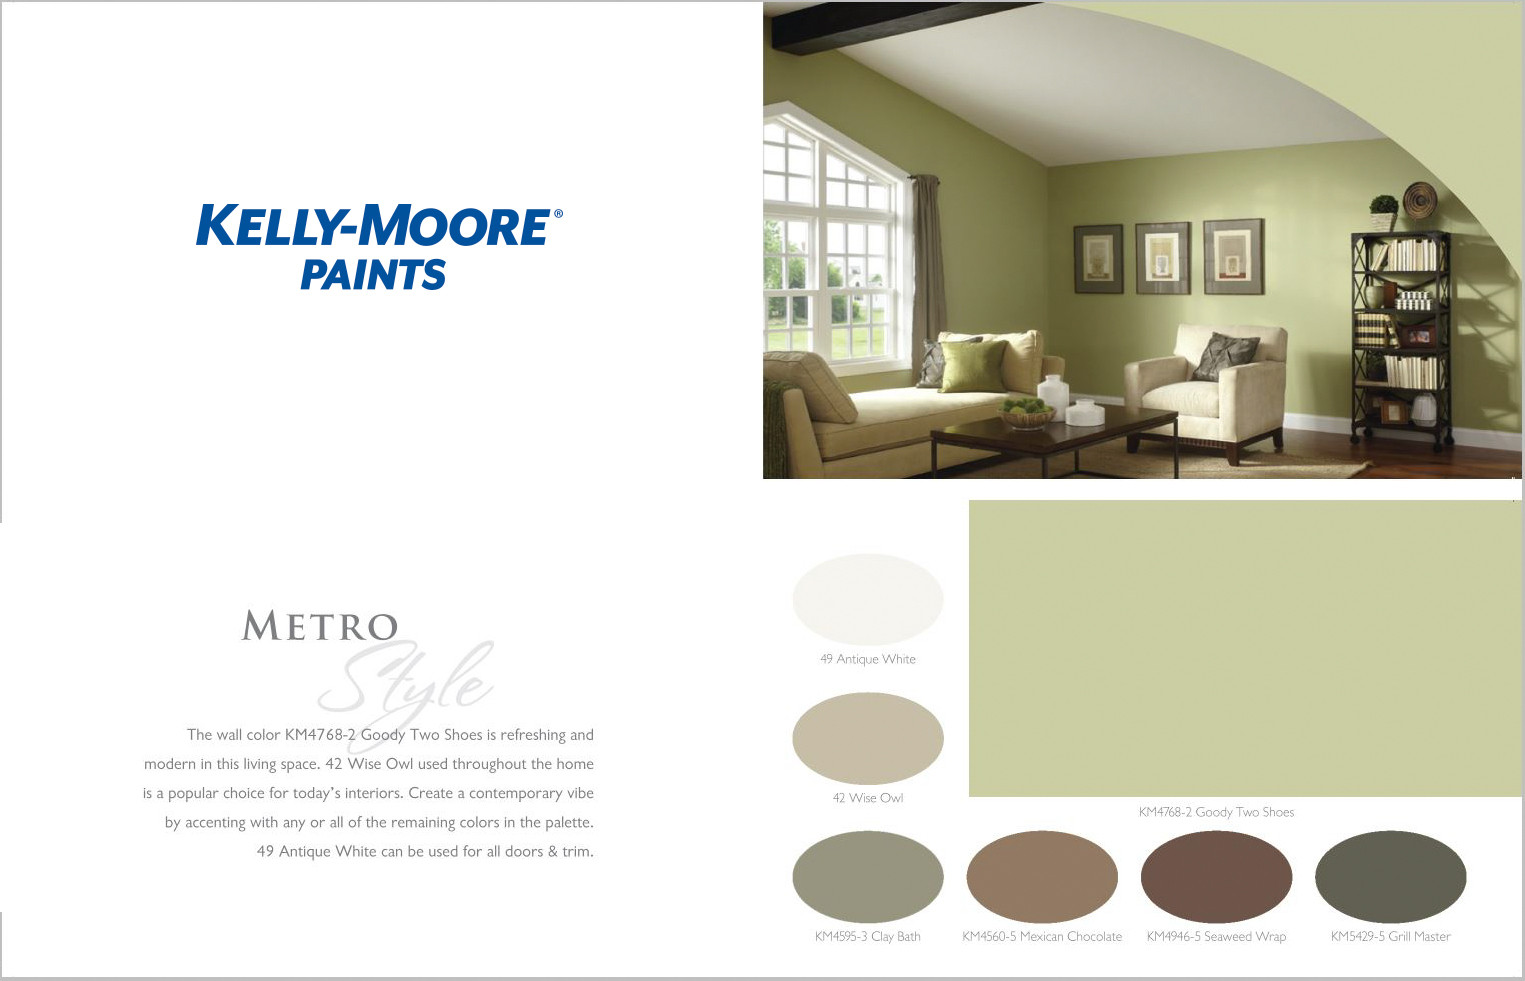 Best ideas about Kelly Moore Paint Colors . Save or Pin Kelly Moore Color Chart Now.